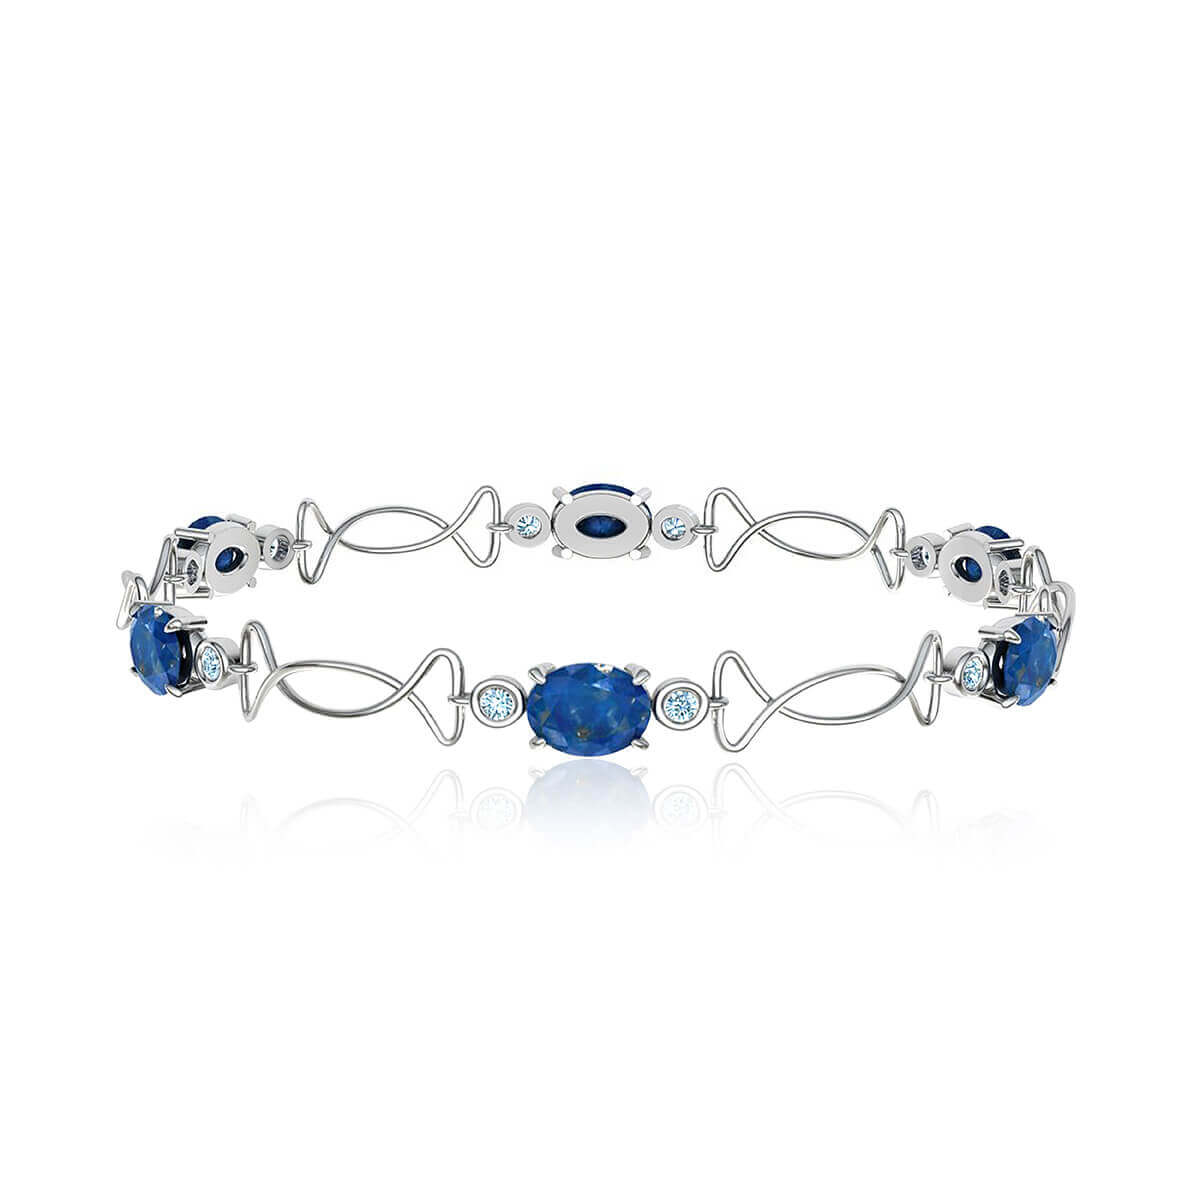 Bashford AnaCapri Sapphire and Diamond Bracelet (1/2 CT. TW.)